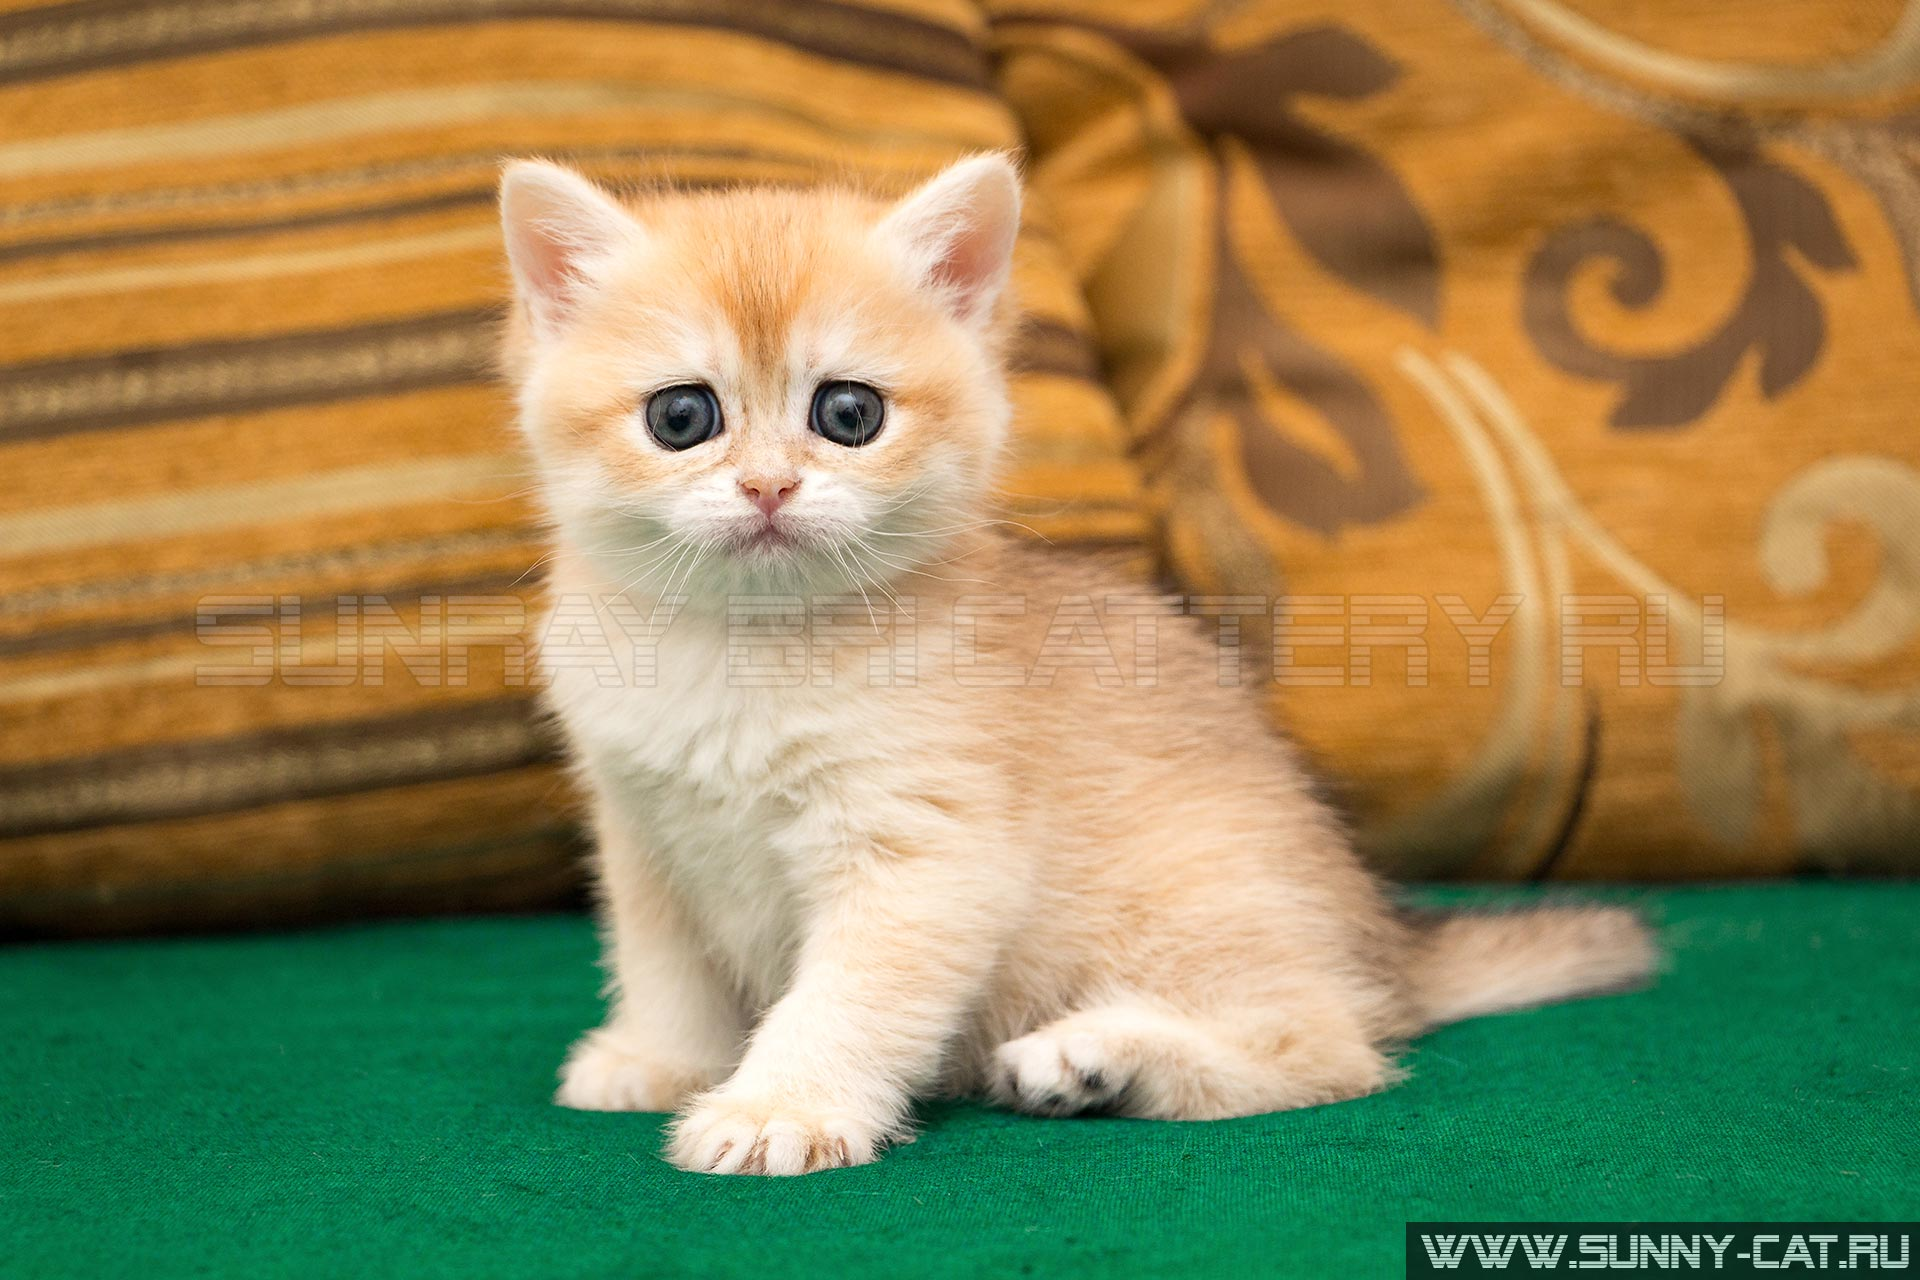 Funny names for tender white british longhair (BLH) female cats